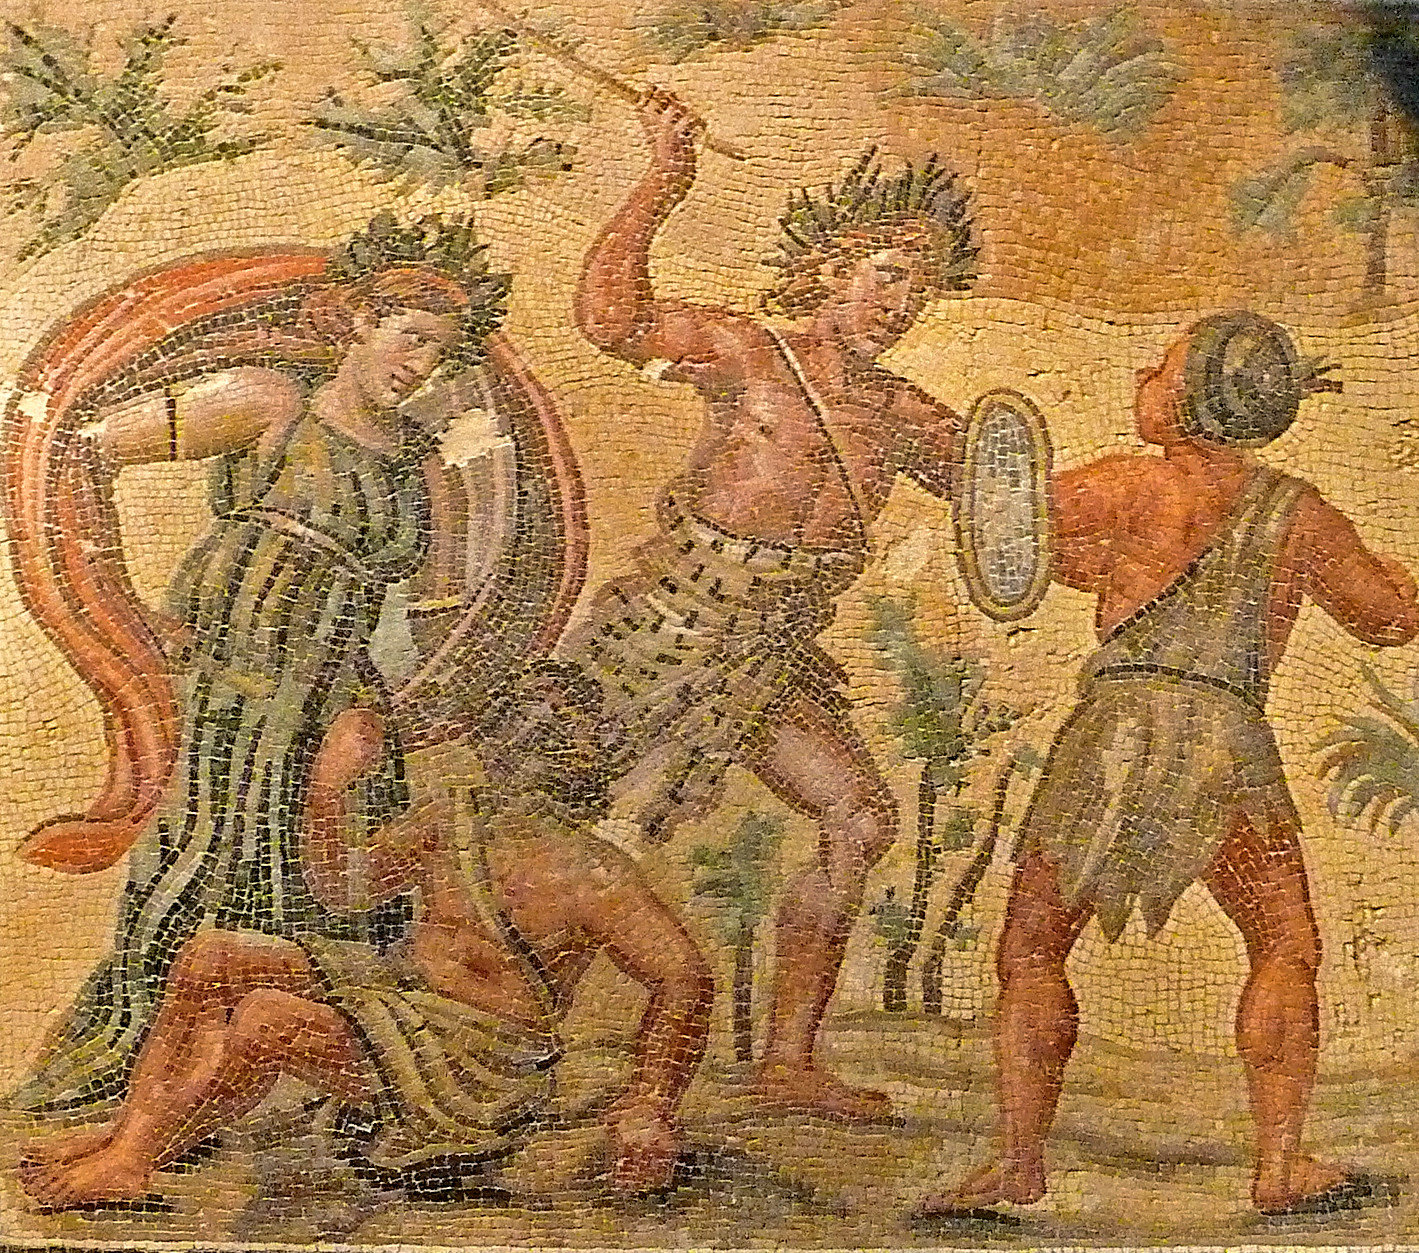 Roman Mosaics of National Roman Museum, Rome (7)